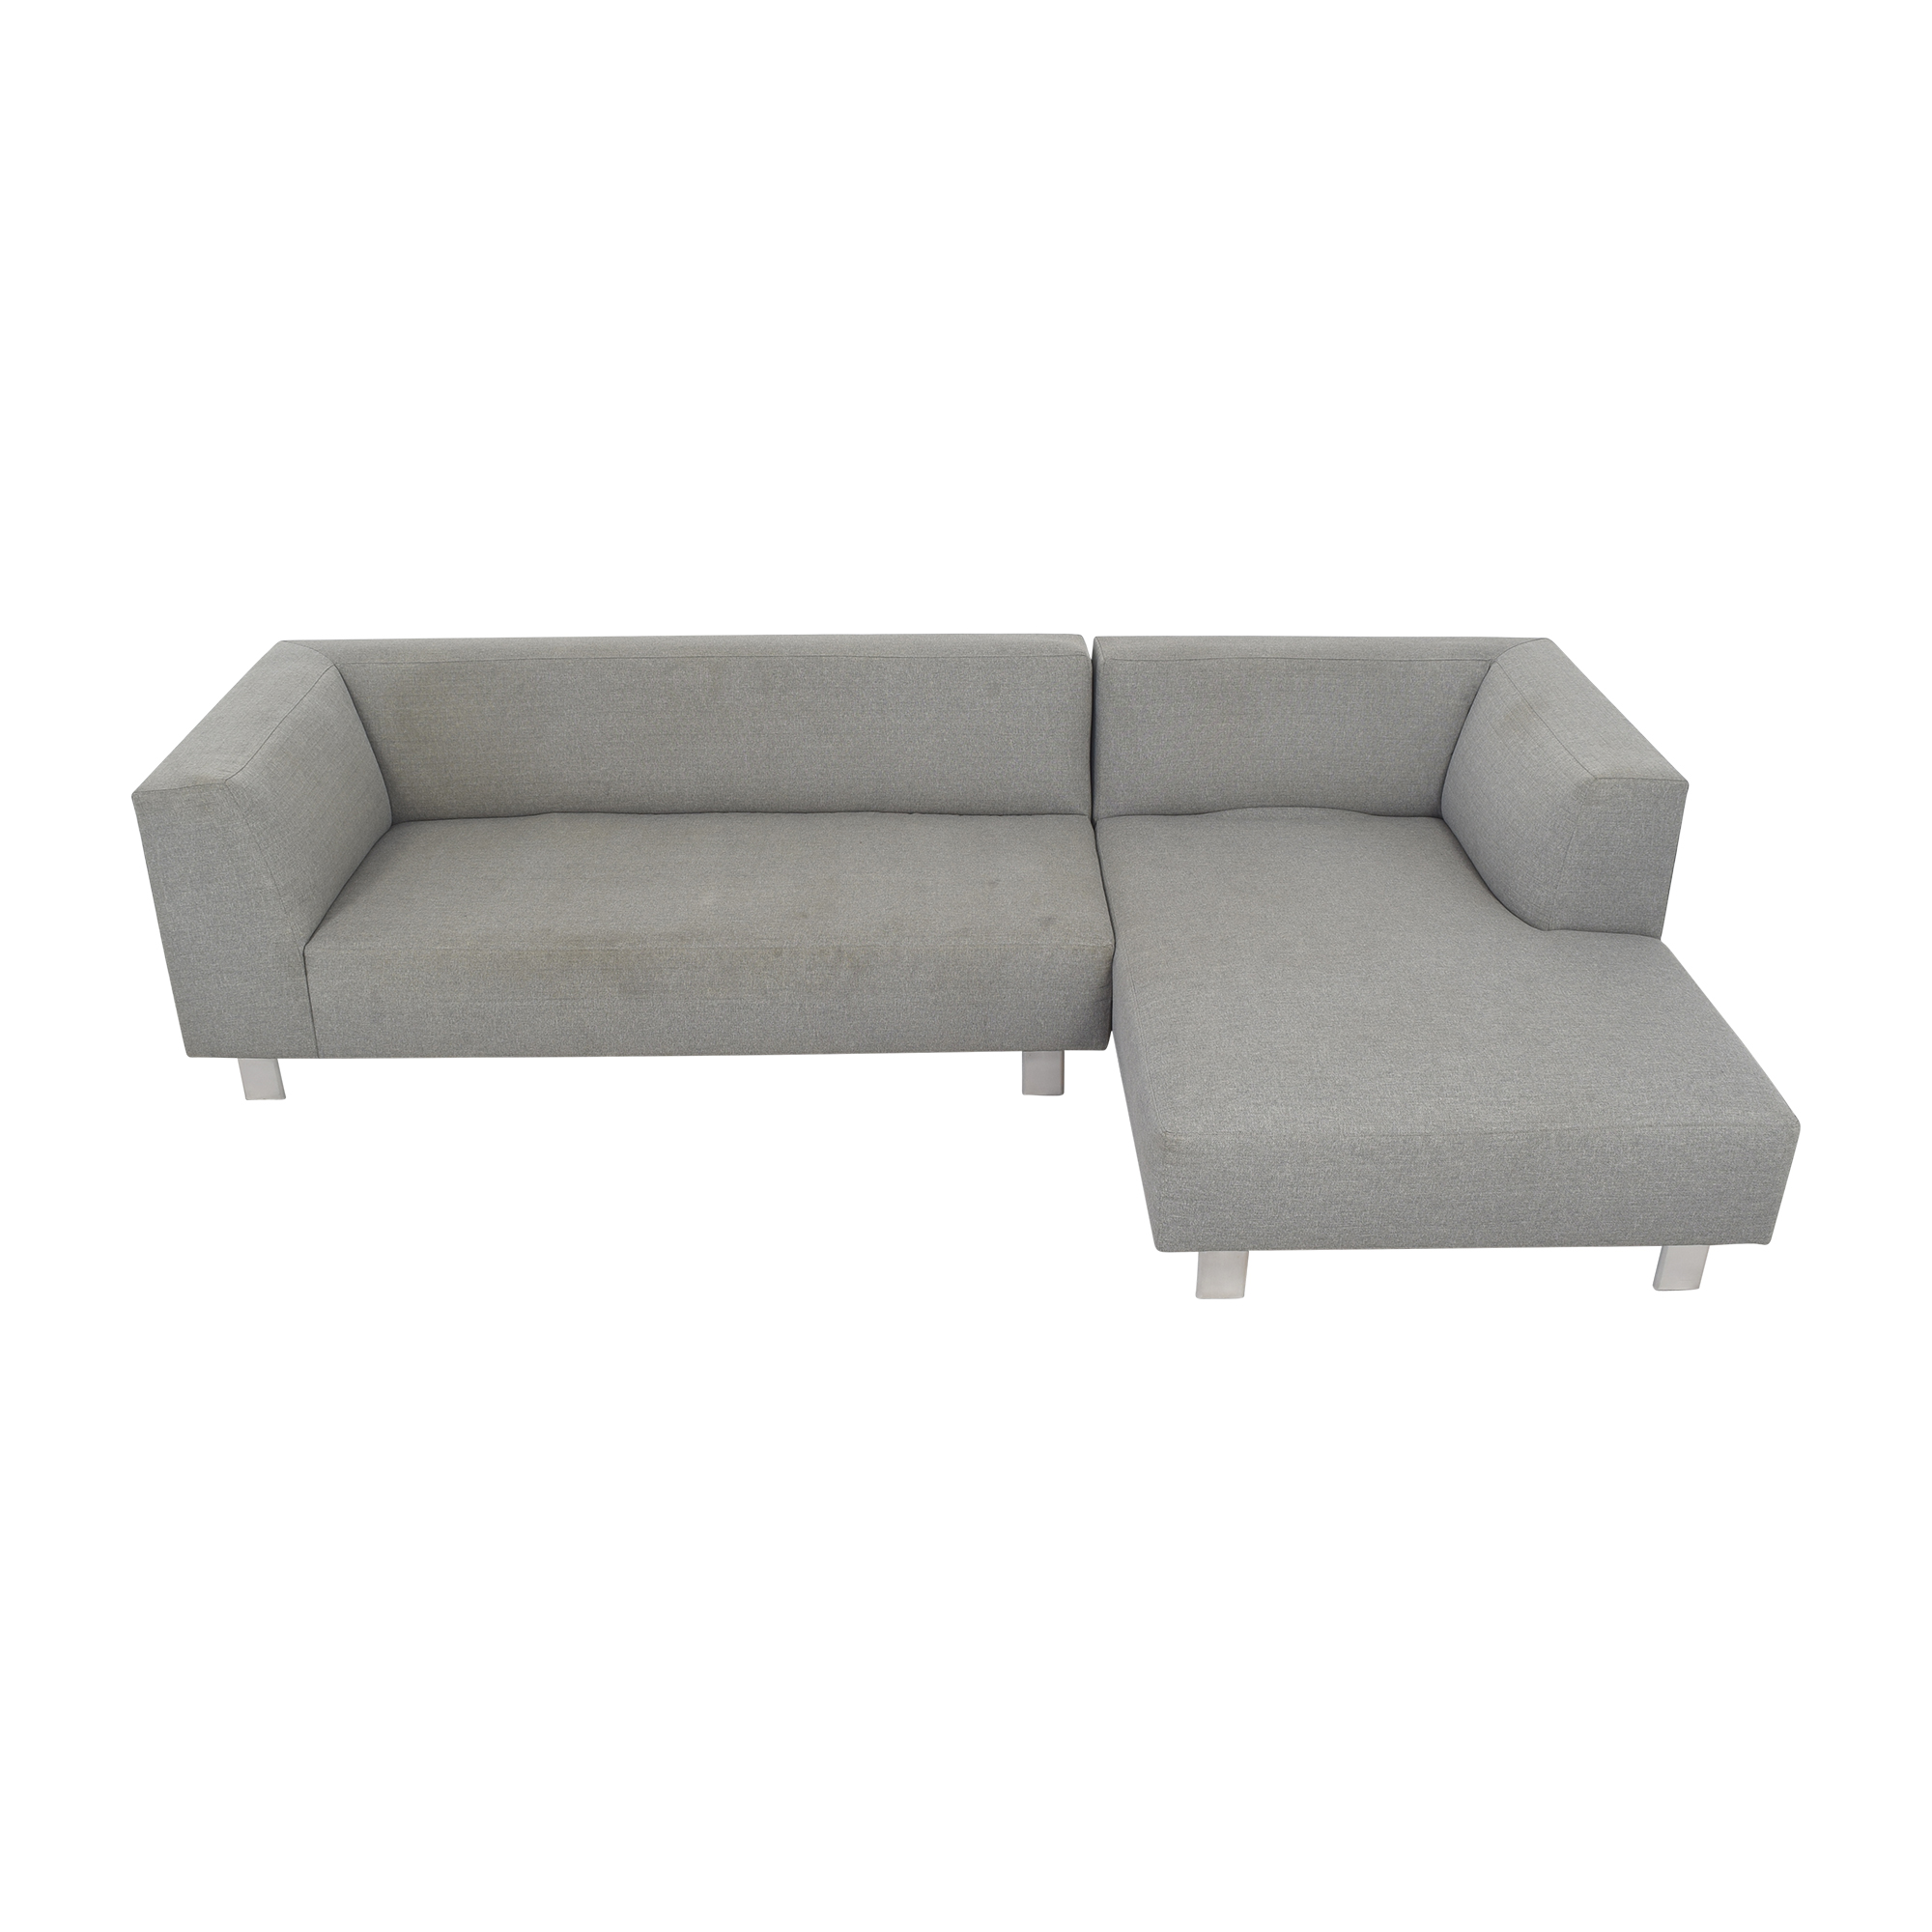 Picture of: Sectional Sofa Couch Top 7 Best Sectional Couches Under 300 For 2020 Ibestreviews